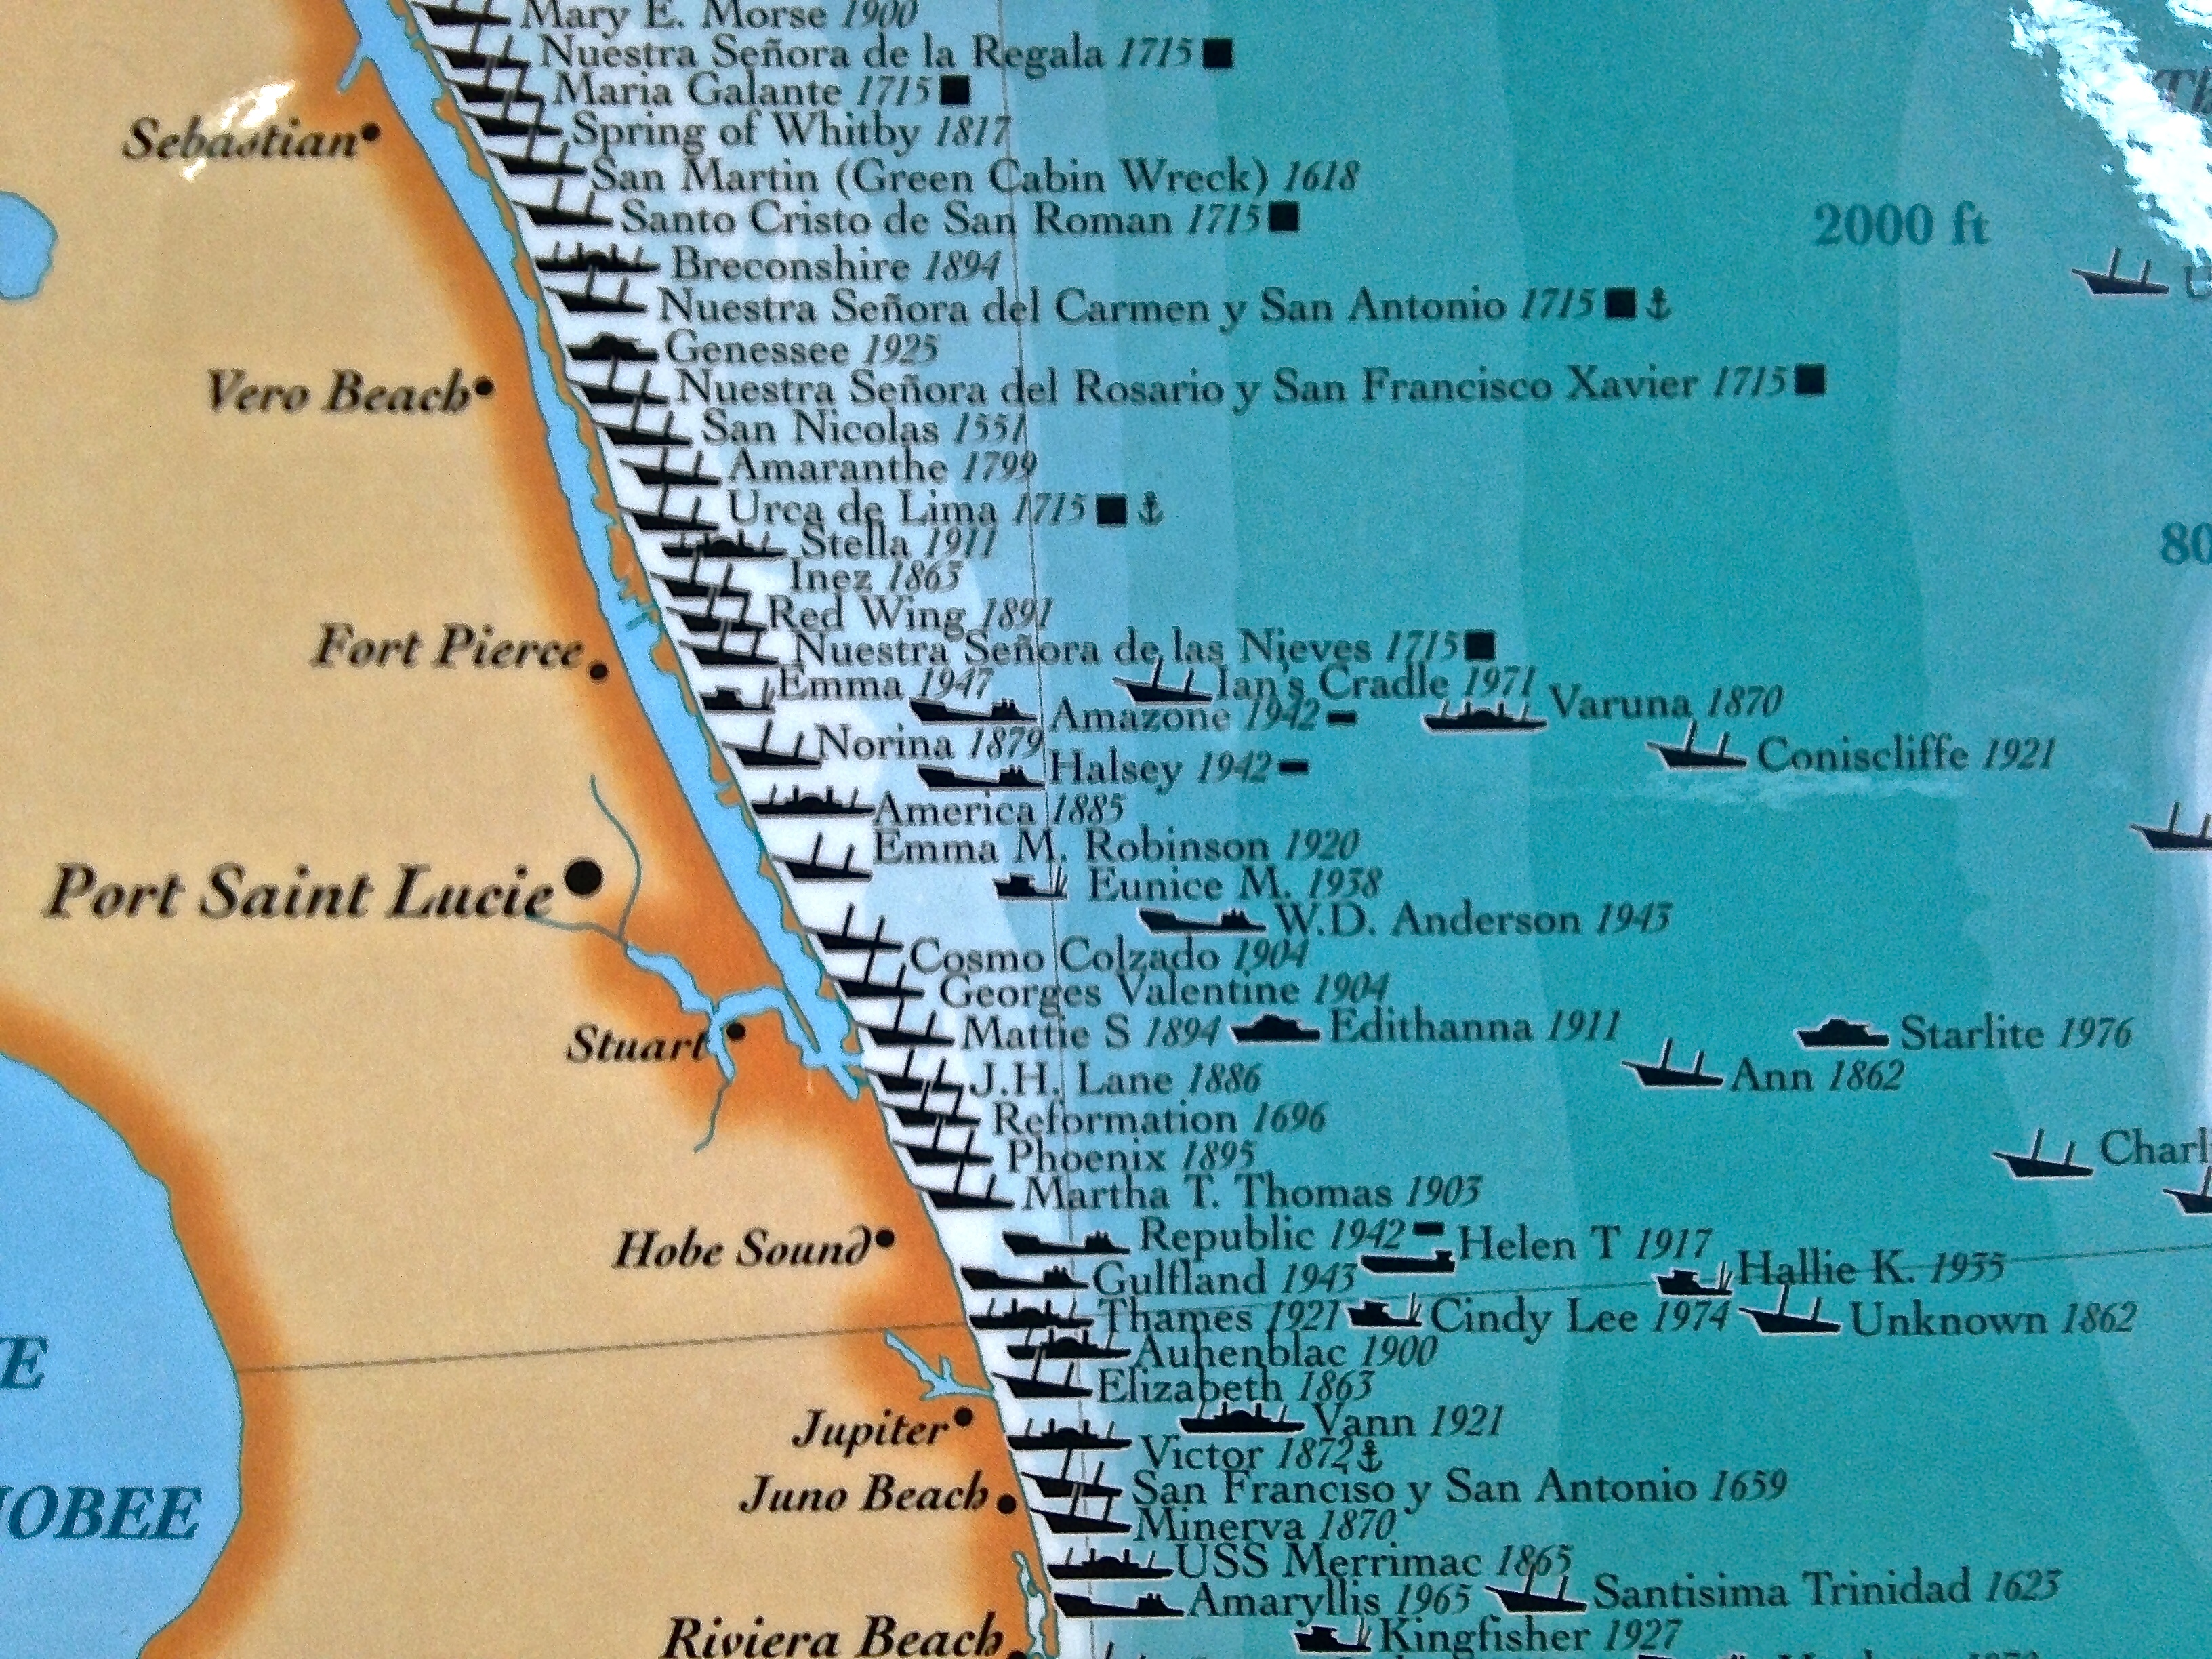 Florida Shipwrecks Map treasure coast ships map | Jacqui Thurlow Lippisch